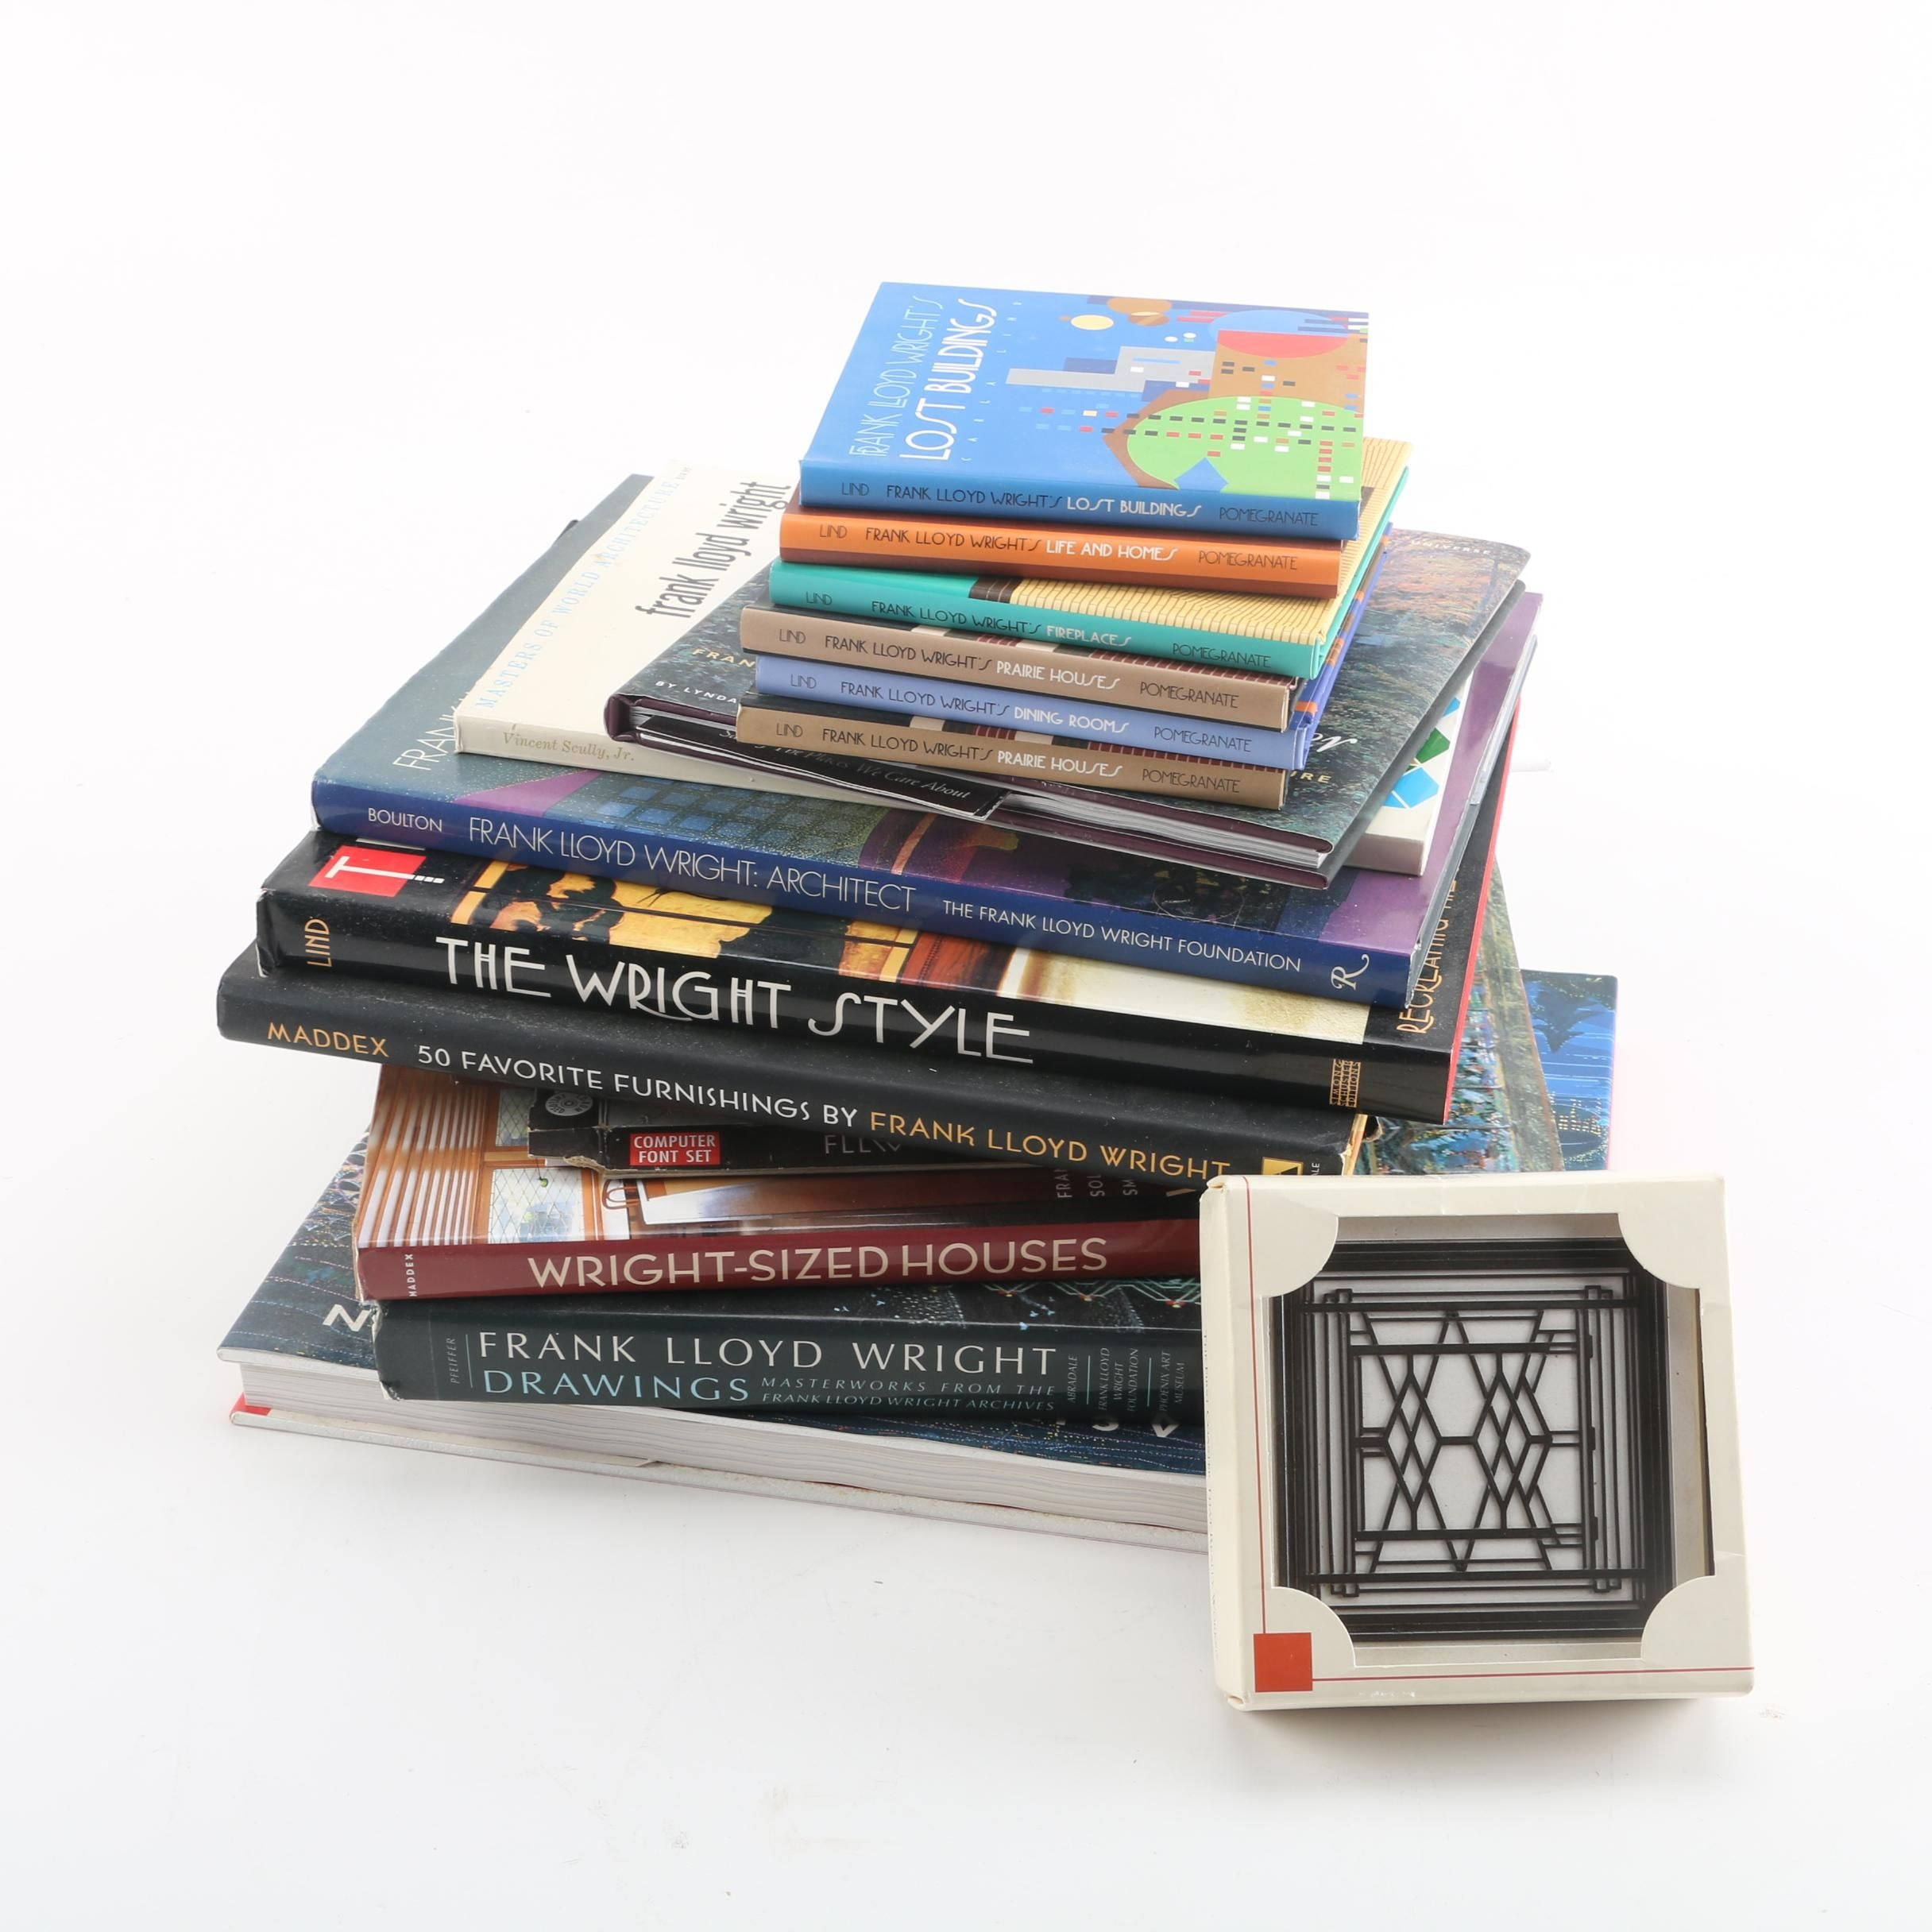 Frank Lloyd Wright Architecture and Design Books with Coasters and Letter Opener